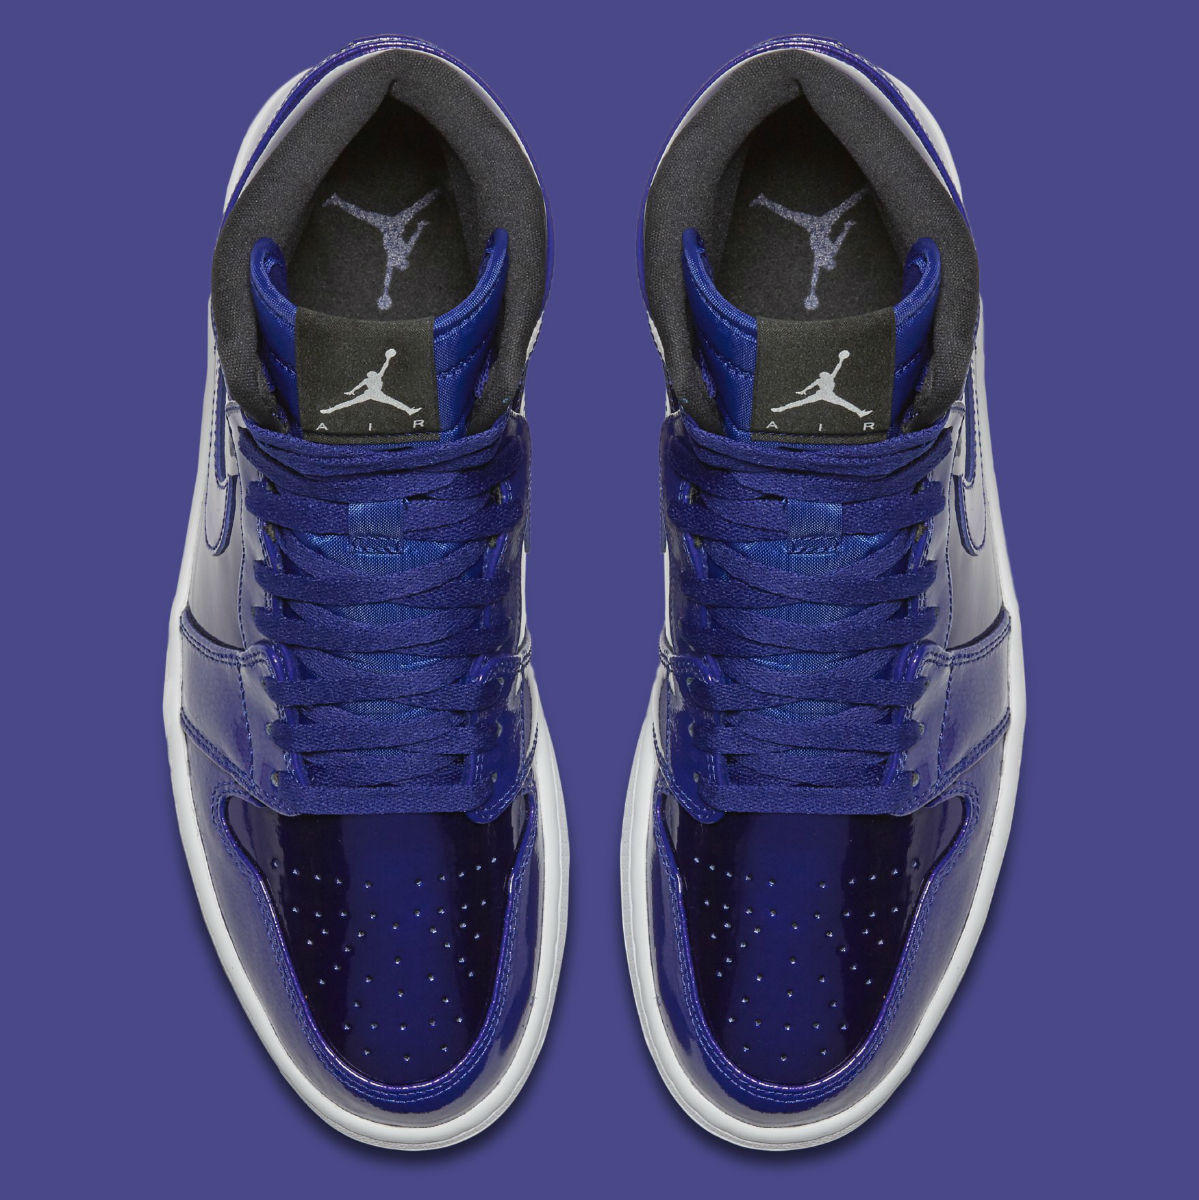 Air Jordan 1 Deep Royal Patent Top 332550-420 b1d7966ab